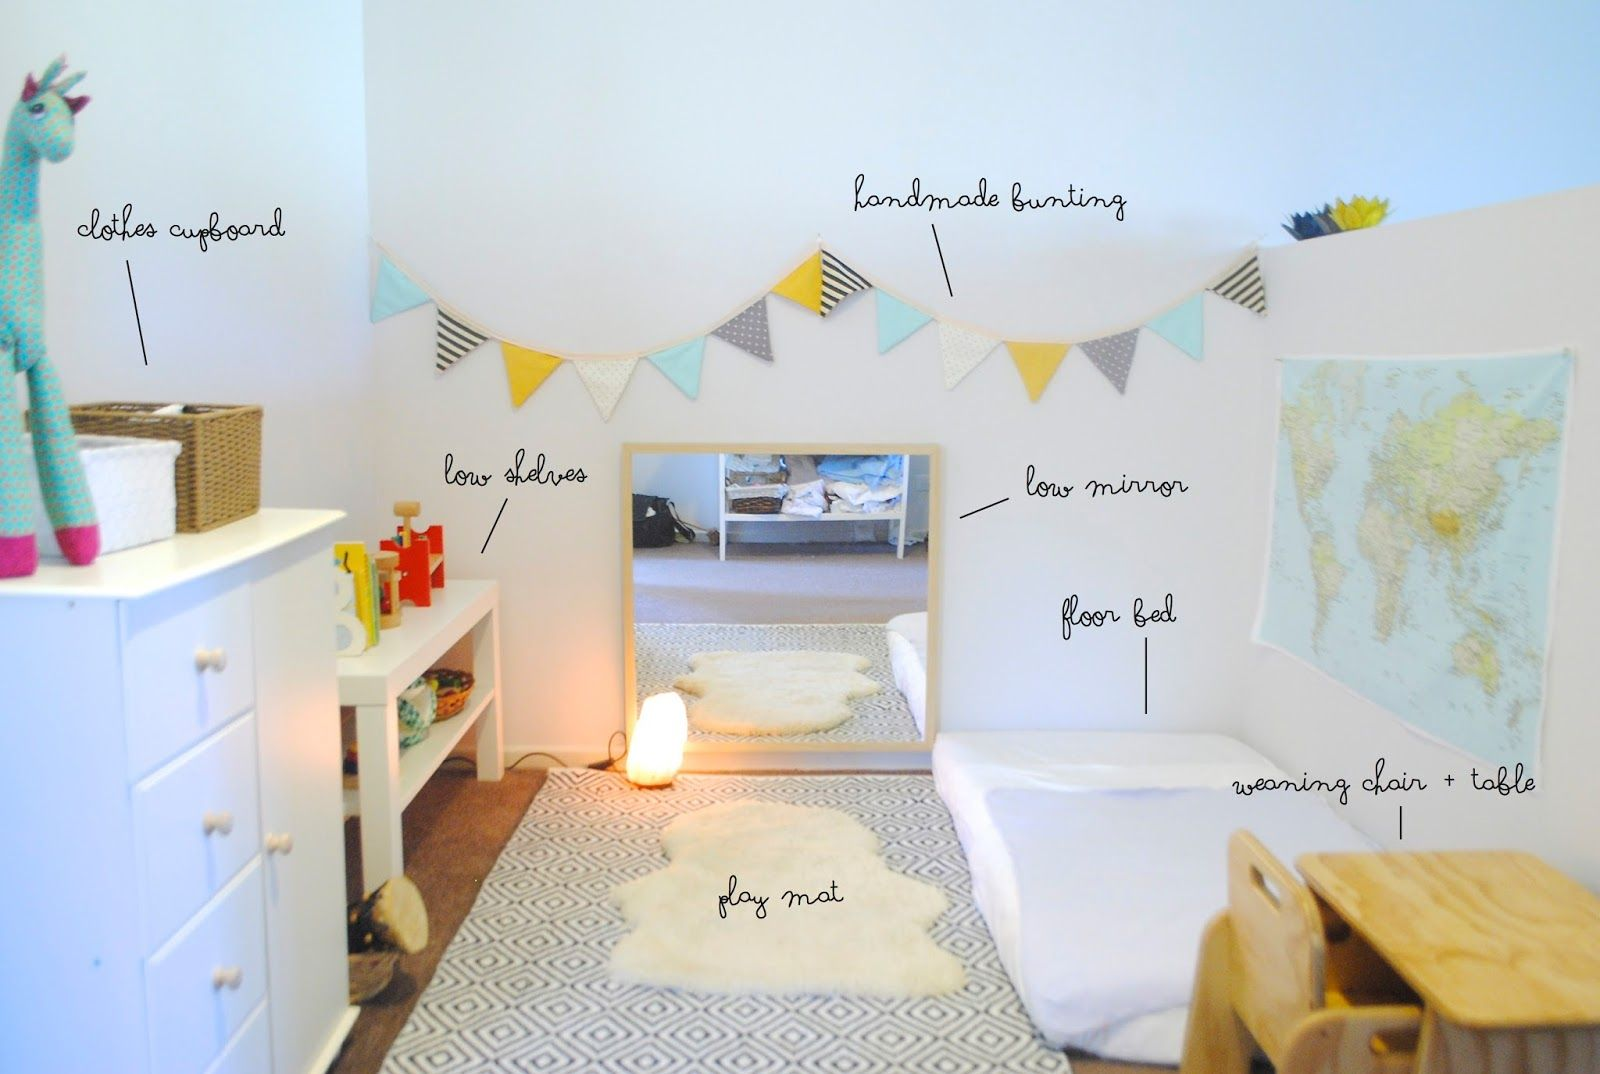 Beau 39 s montessori room 8 months from belle beau montessori friendly home pinterest - Baby nursery ideas for small spaces style ...